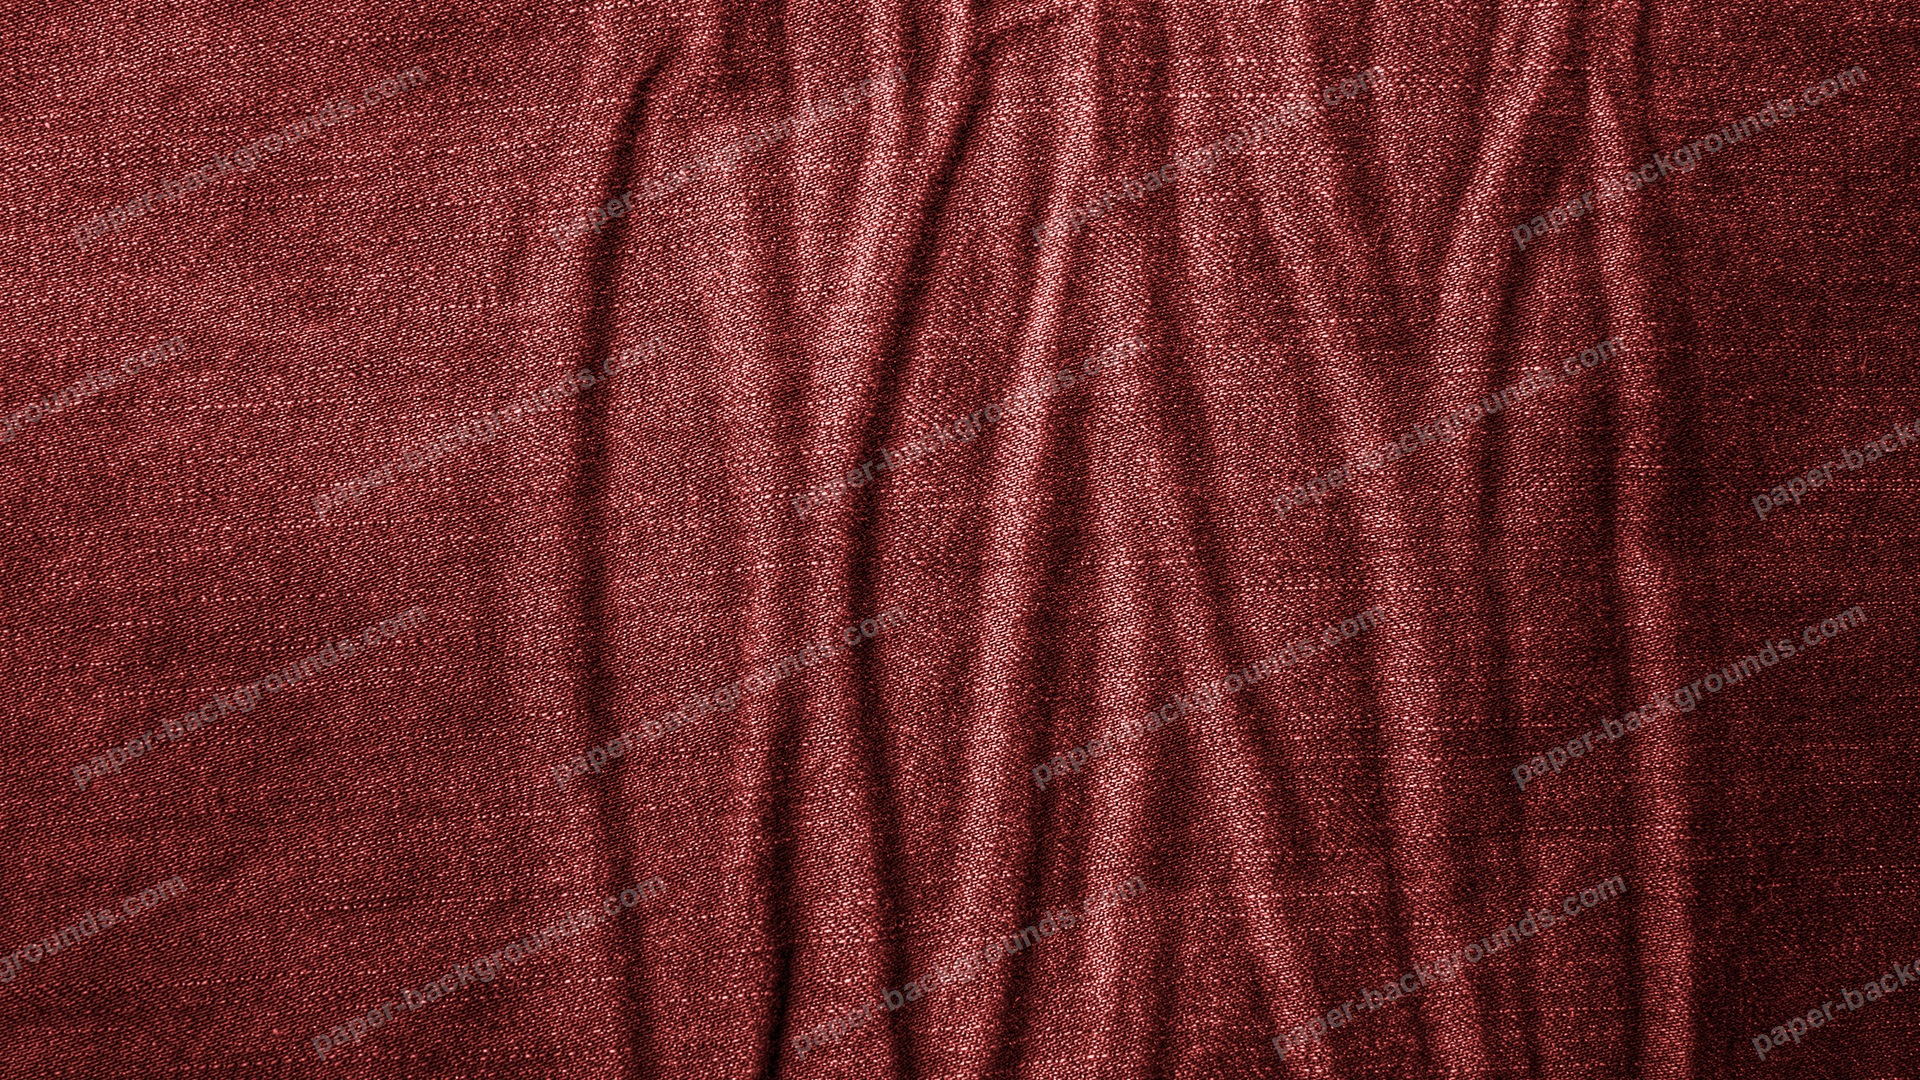 Wrinkled Red Jeans Texture HD 1920 x 1080p